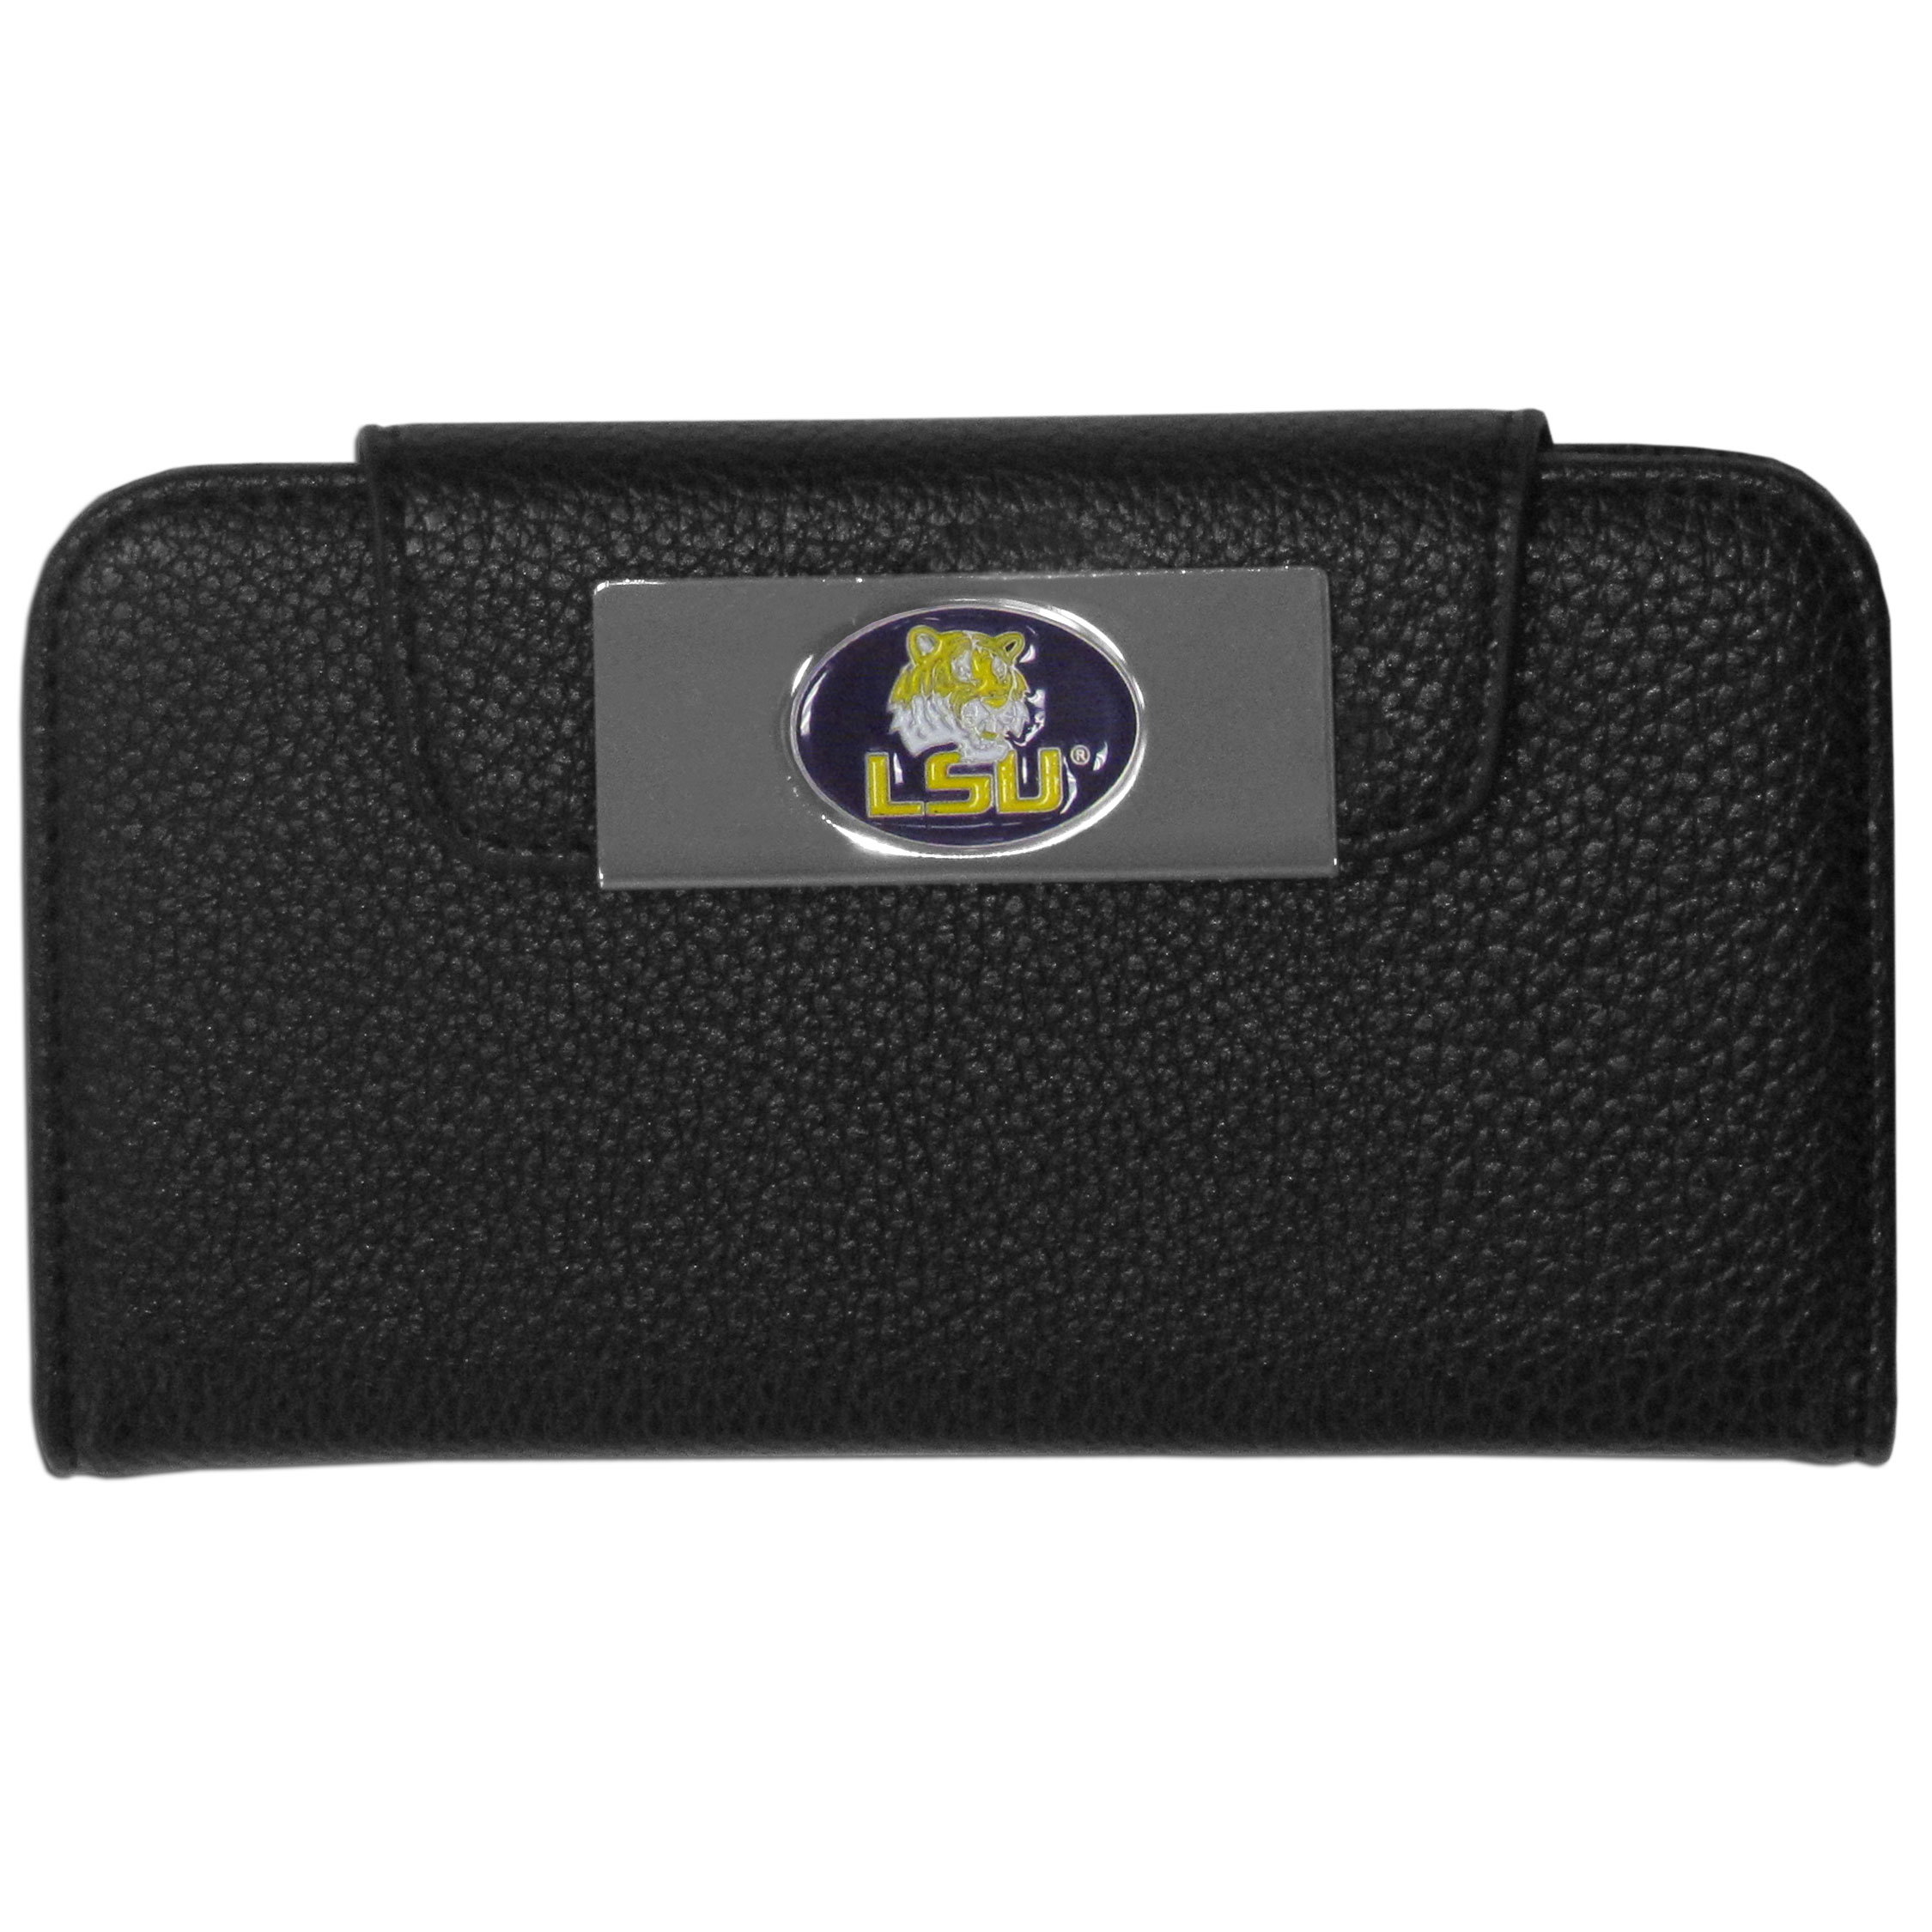 Siskiyou CWCI43 LSU Tigers iPhone 5/5S Wallet Case